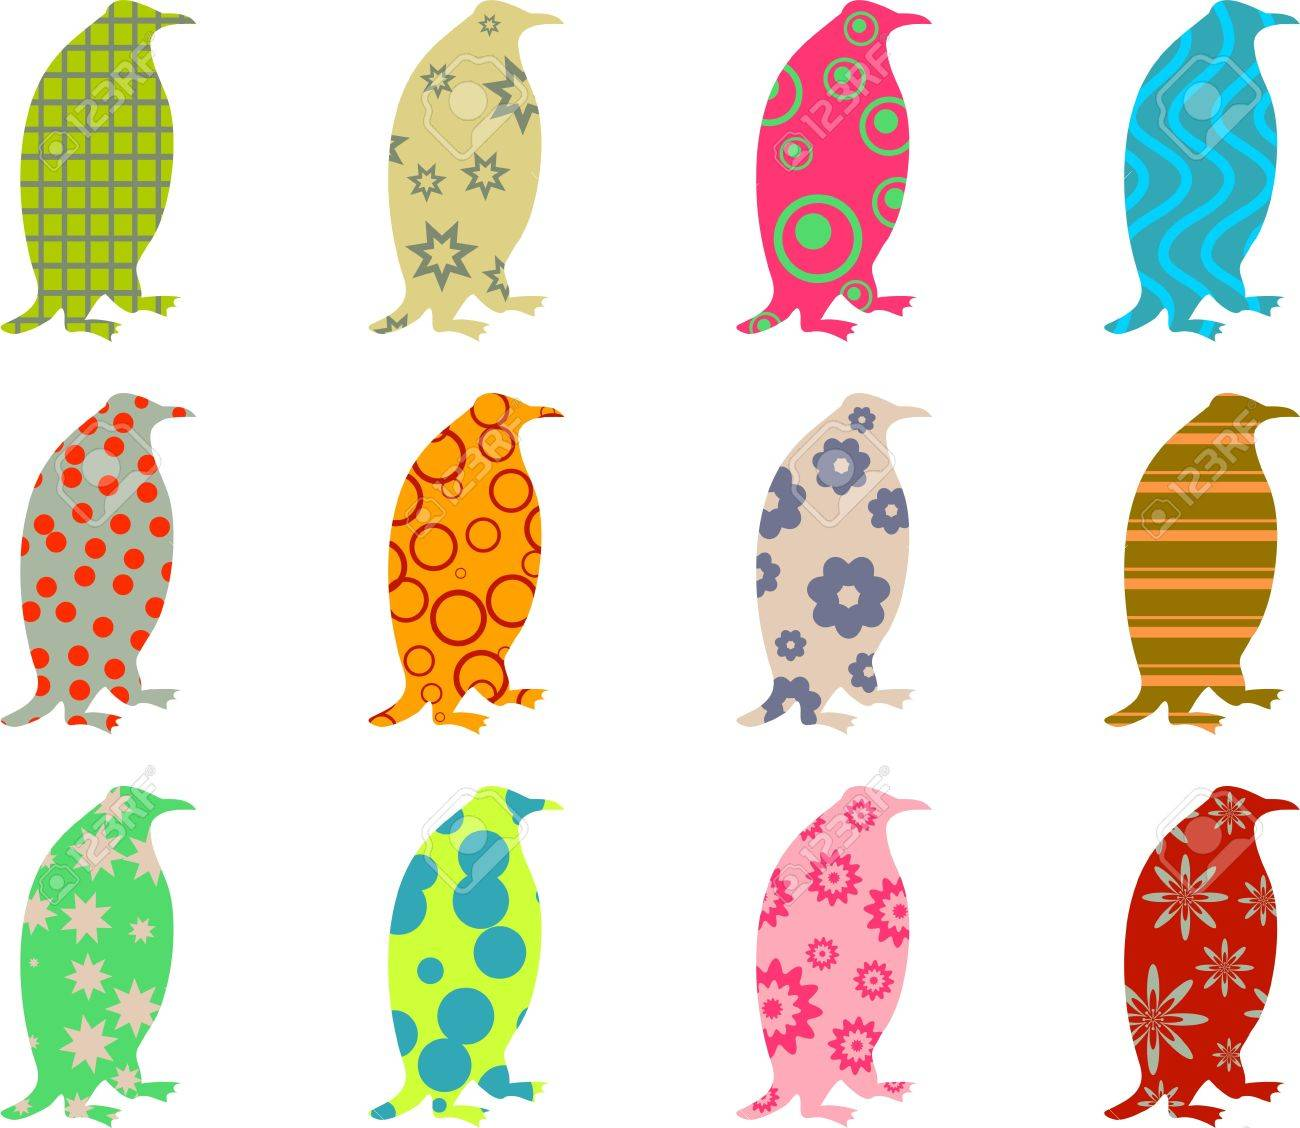 artistic colourful patterned penguin wallpaper background design Stock Photo - 3334420